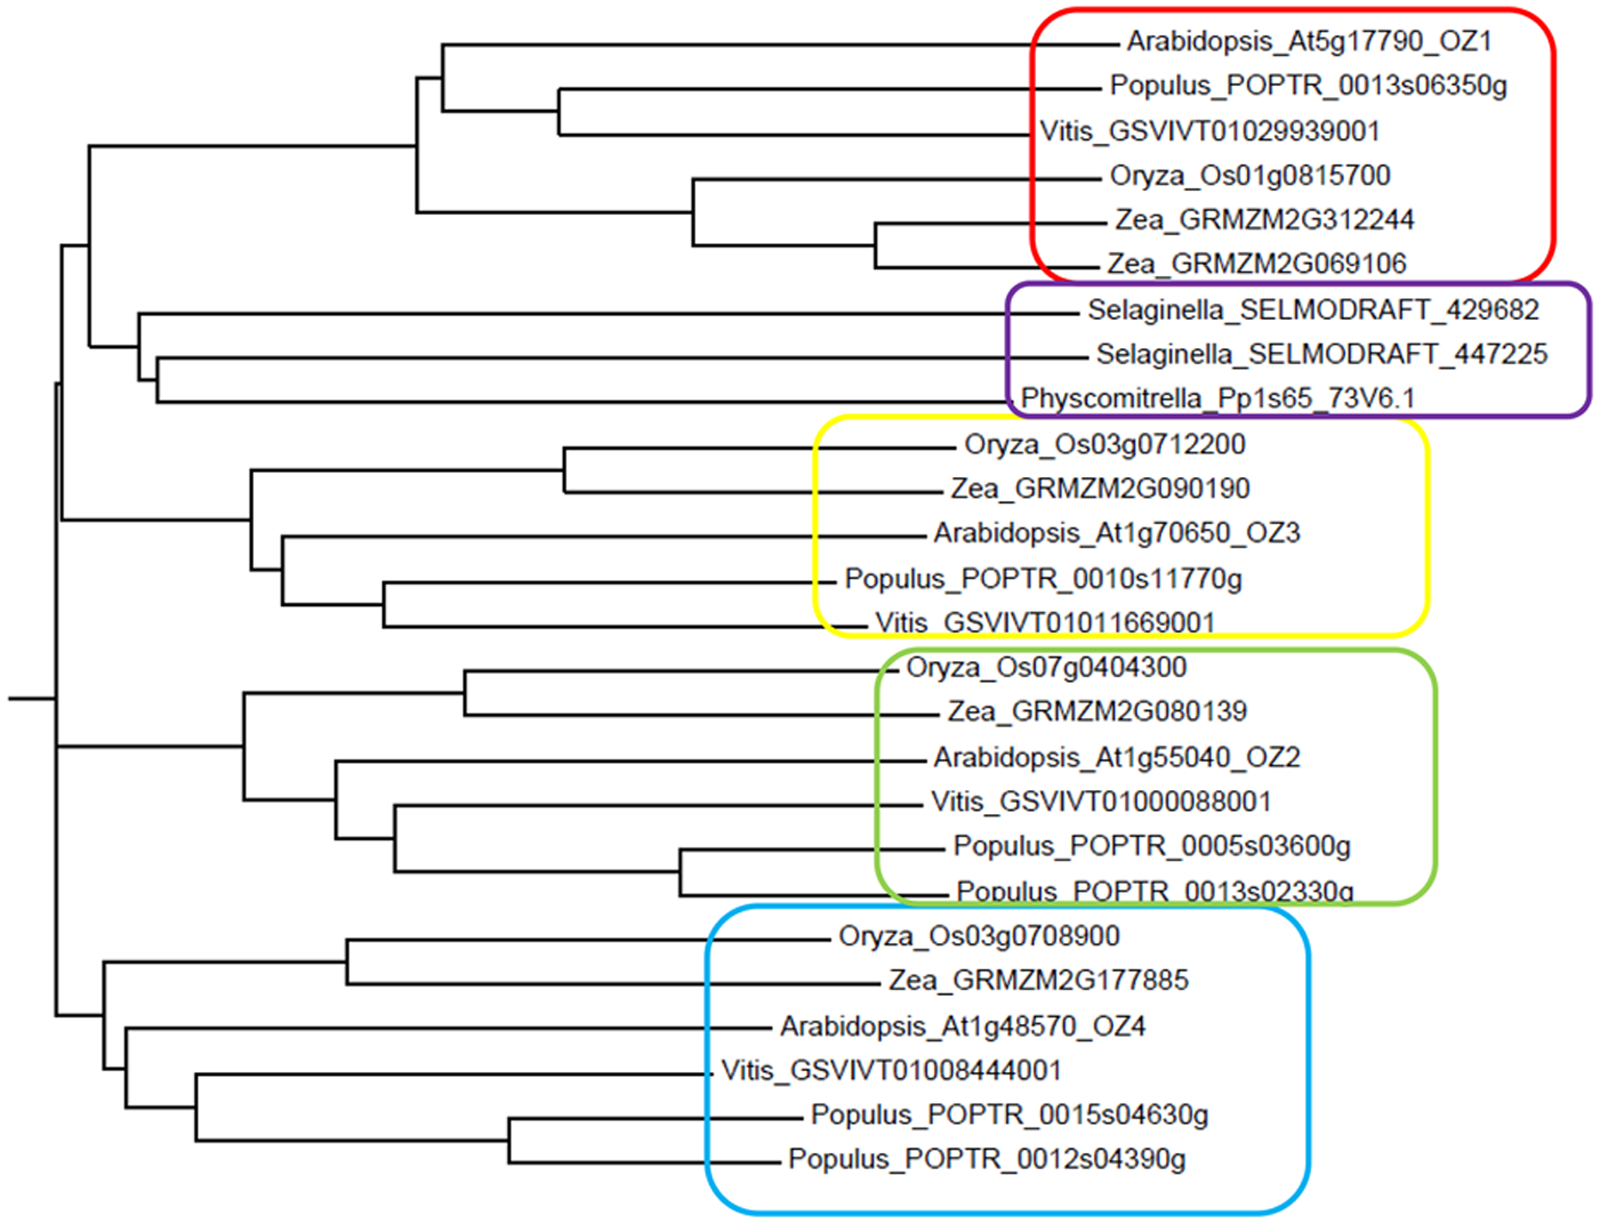 Phylogenetic tree of the OZ family.